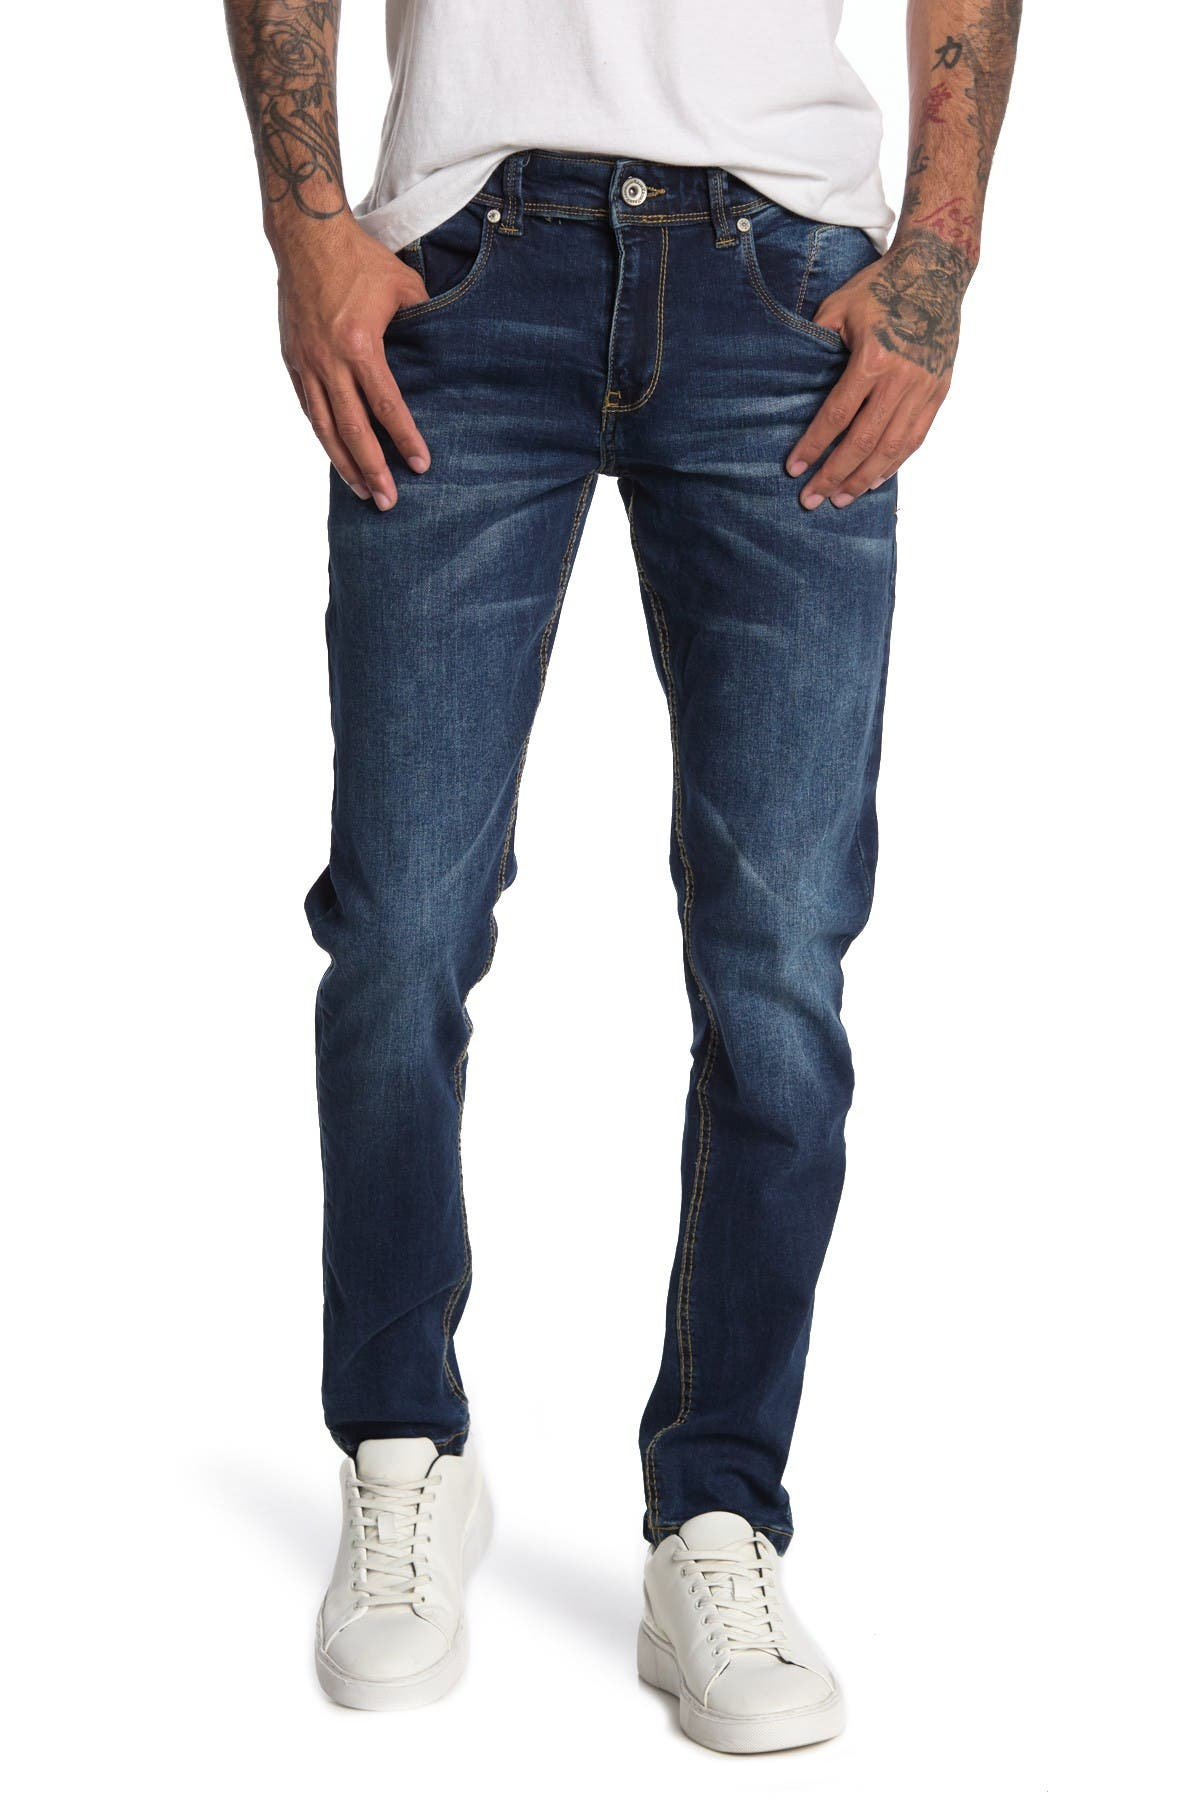 Image of XRAY Skinny Jeans